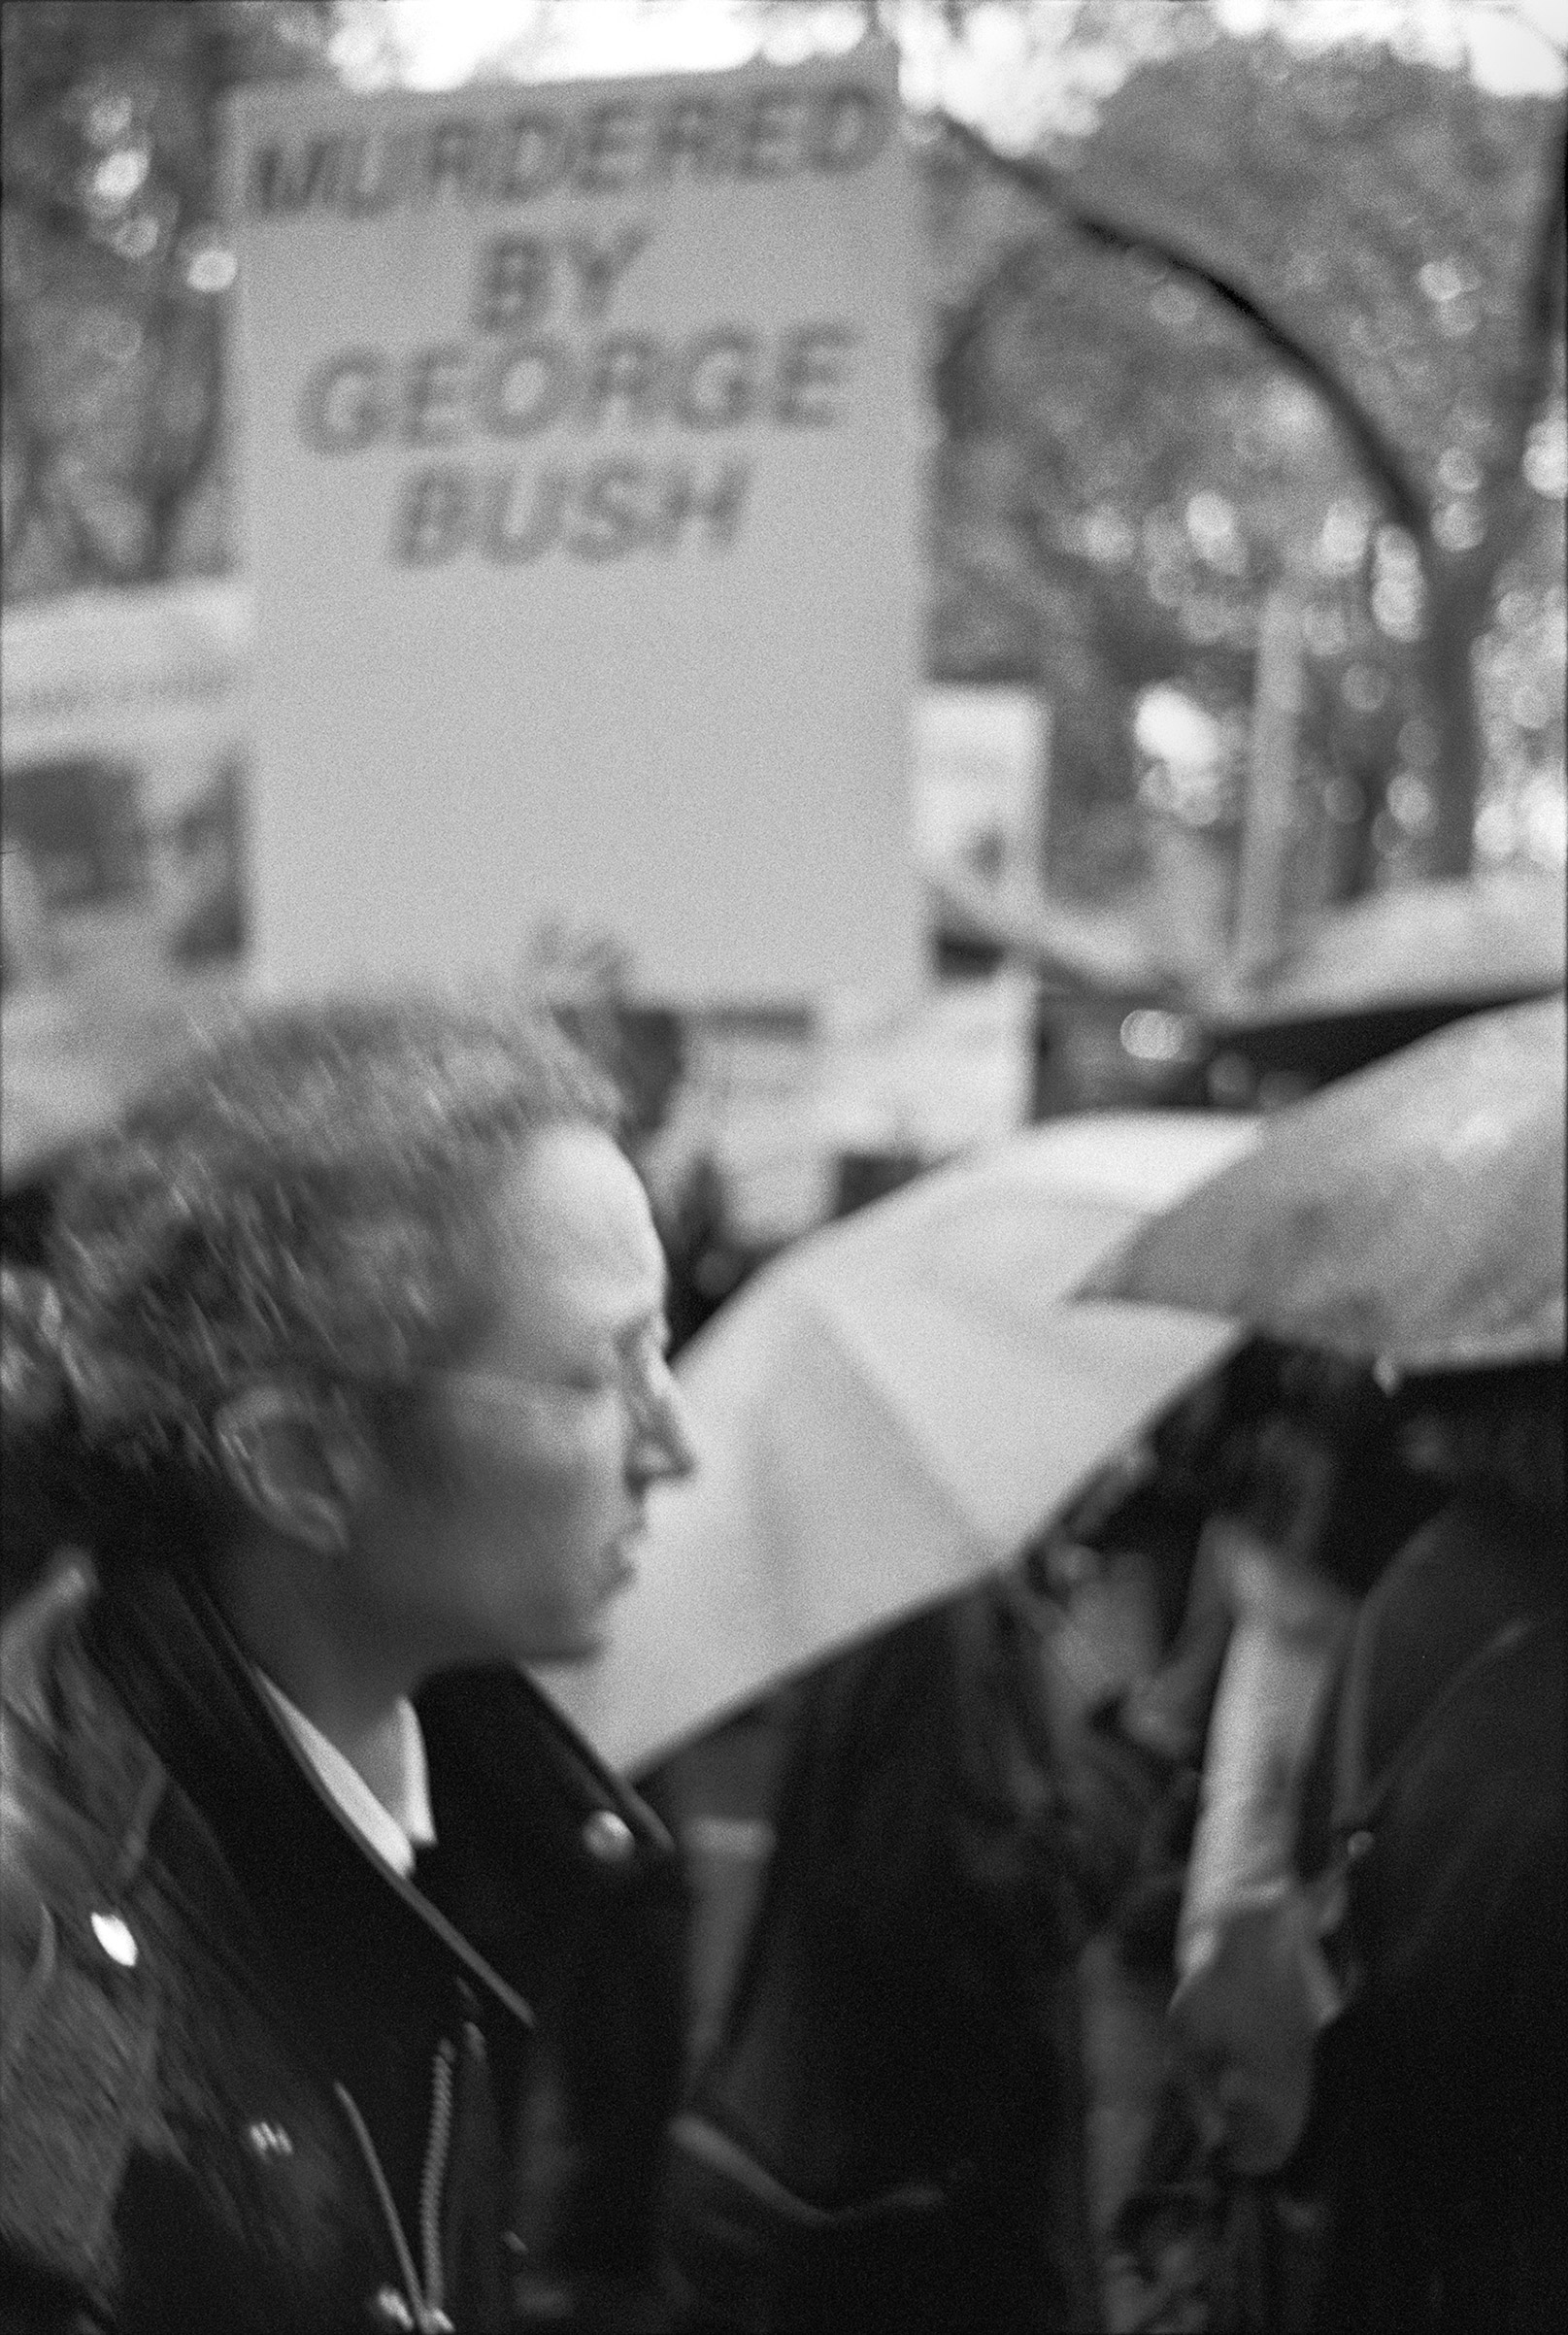 From the ACT UP funeral march carrying the body of Mark L. Fisher from Judson Memorial Church up Sixth Avenue to the Republican National Committee headquarters on the eve of the presidential election, 1992.